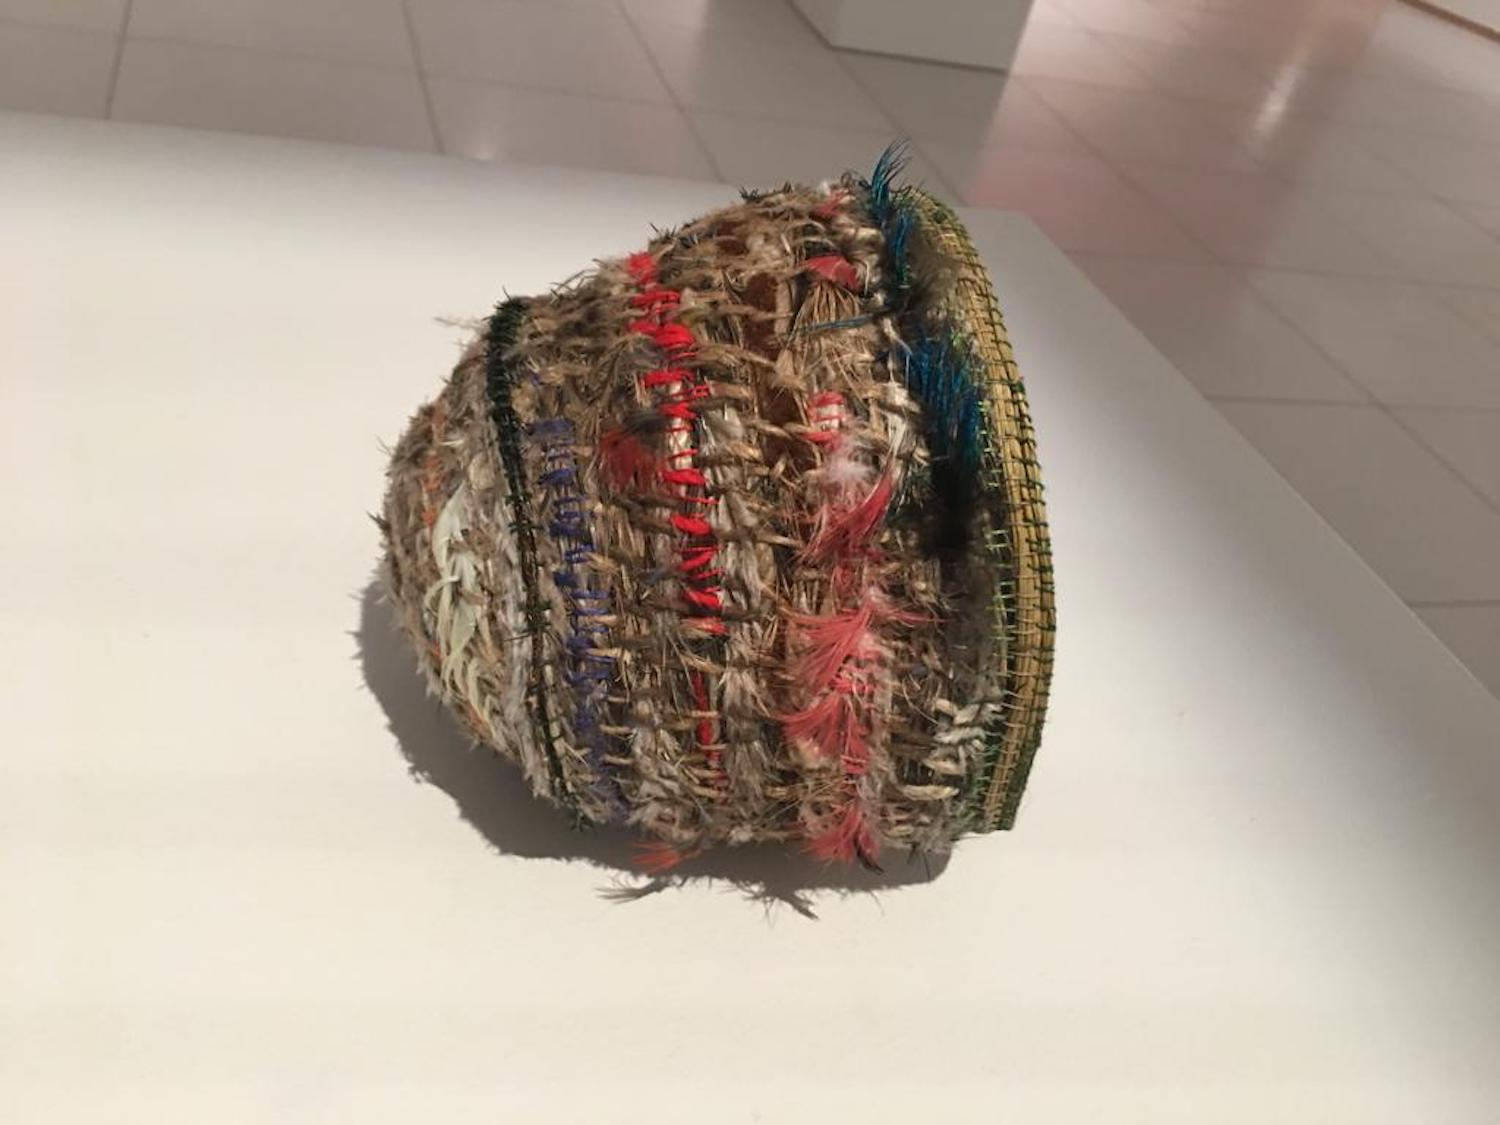 Aboriginal traditional baskets made with such skill